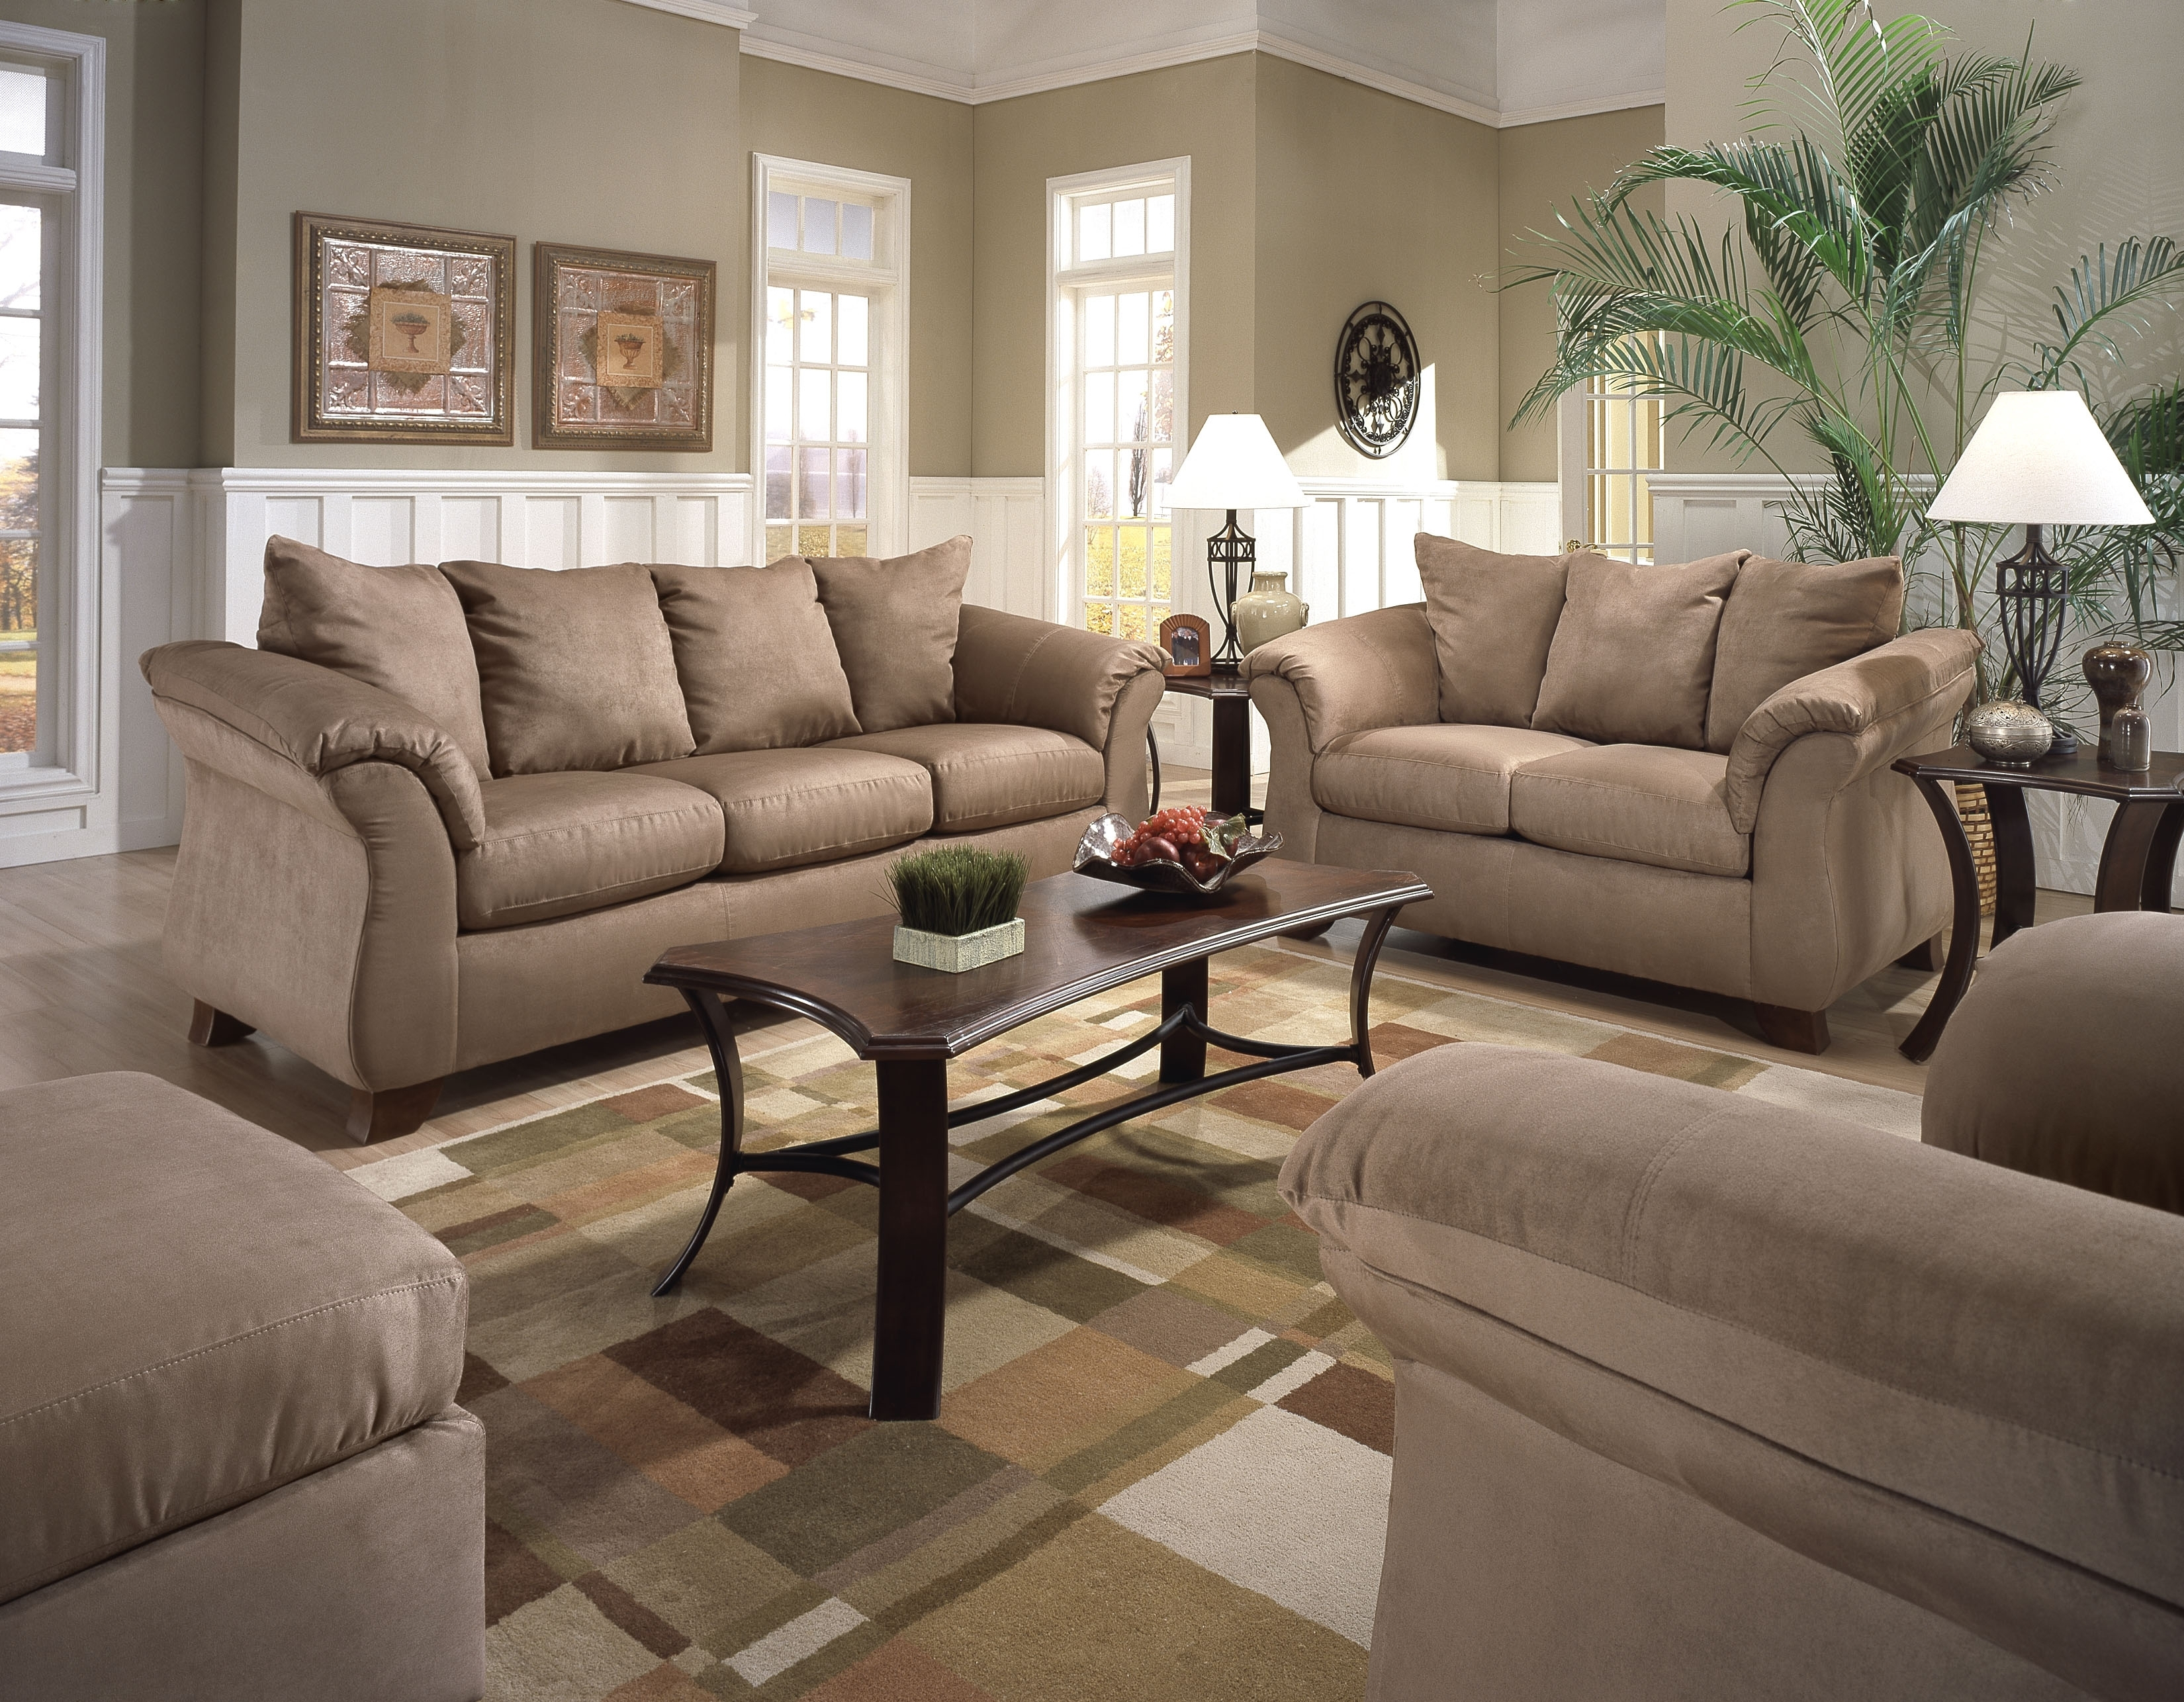 Current Elegant Sofas And Chairs With Regard To Best Sofa Deals Elegant Sofas Living Room Furniture Chairs Living (View 4 of 15)